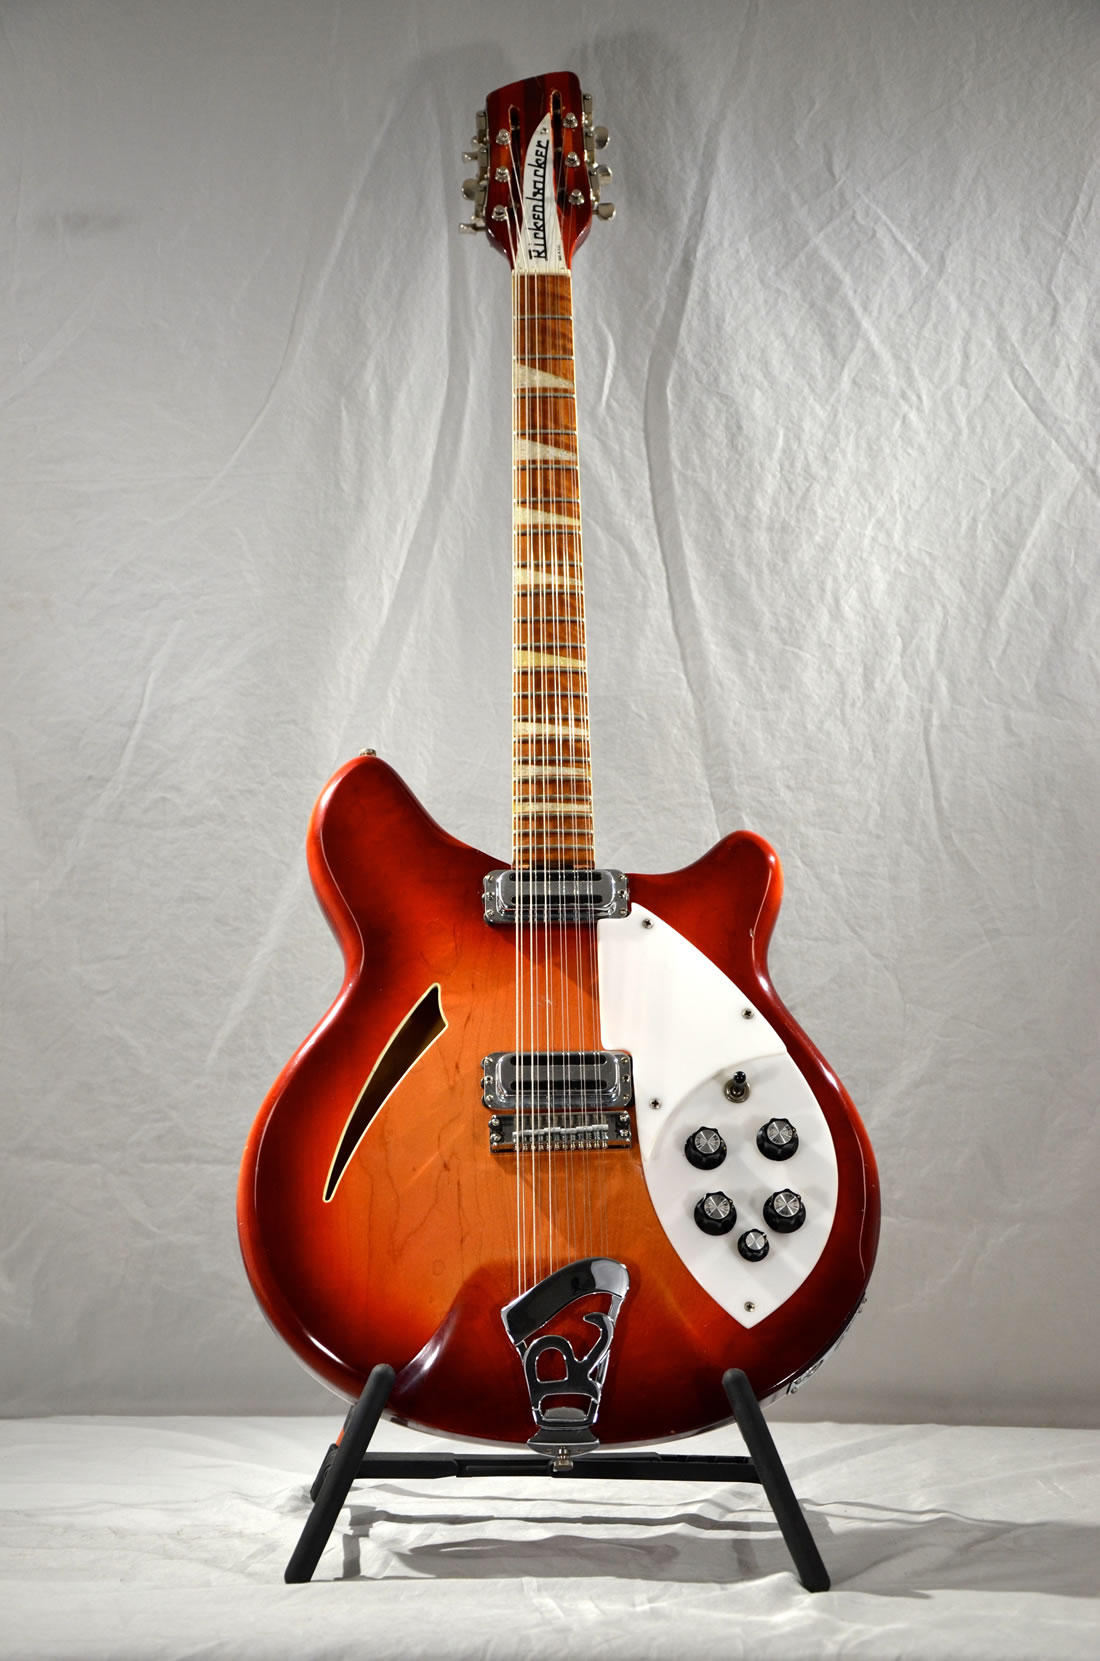 1966 Rickenbacker 360 XII String Guitar